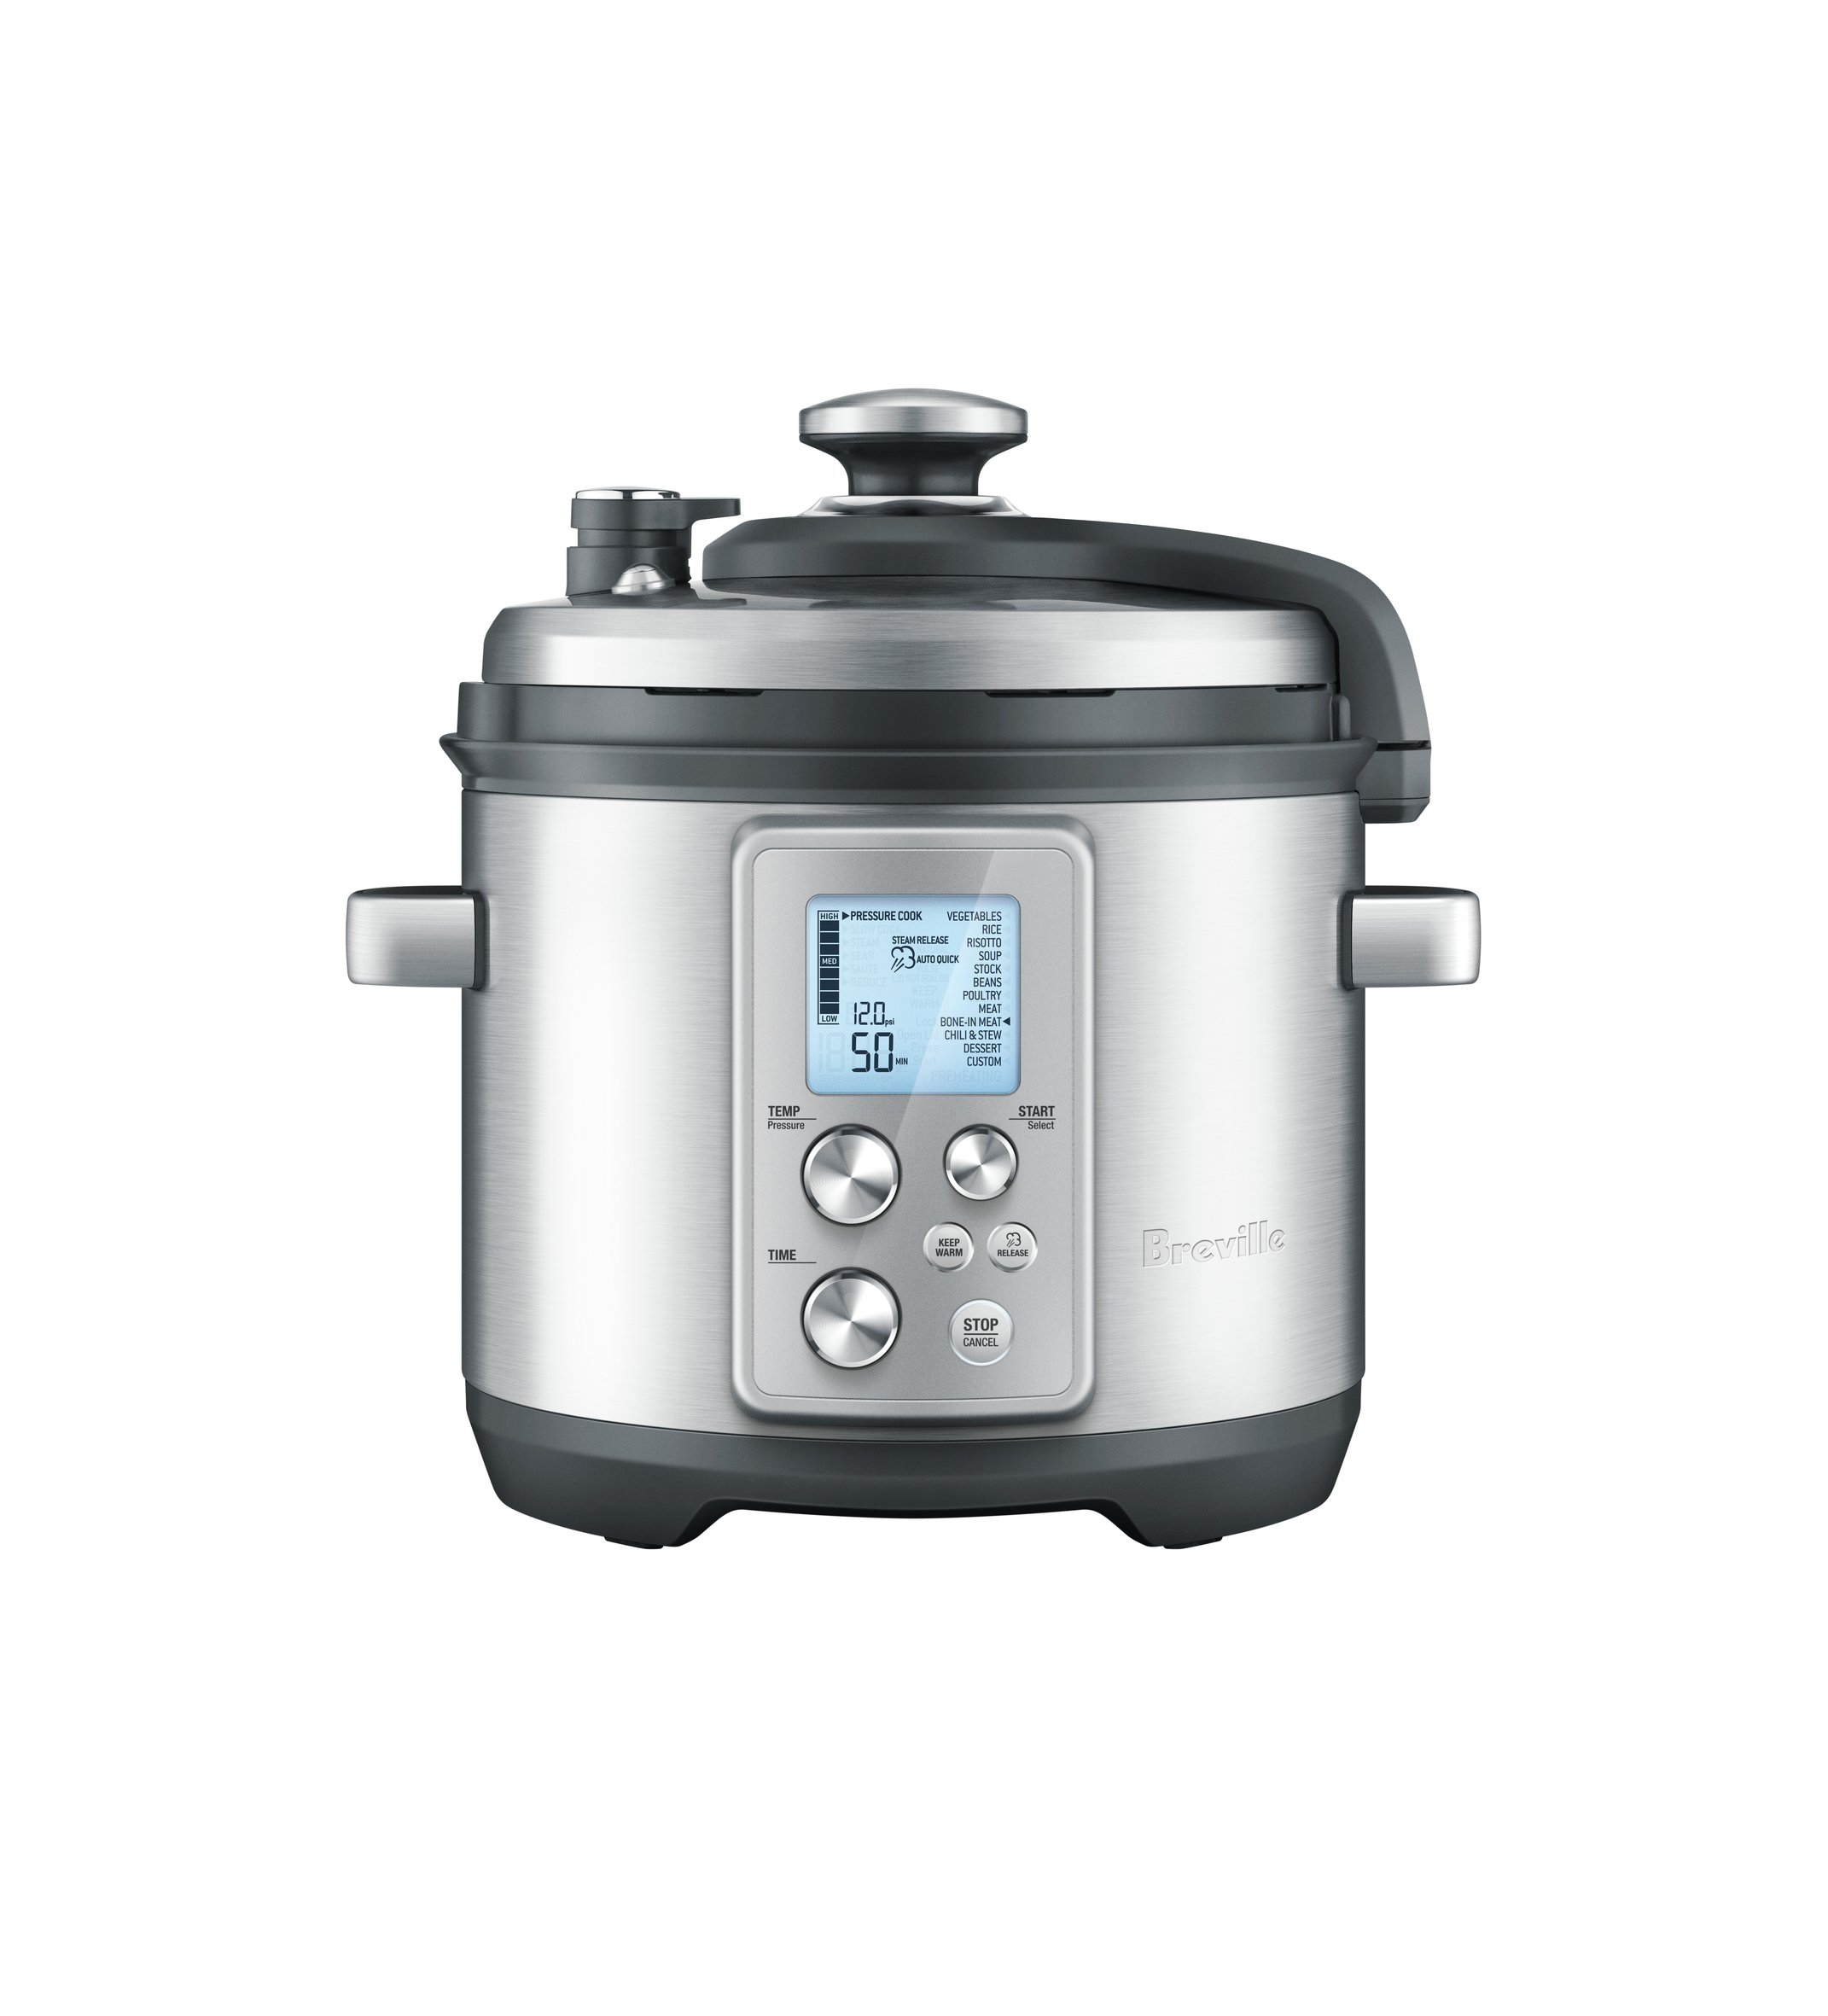 Breville BPR700BSS Fast Slow Pro Multi Function Cooker, Brushed Stainless Steel by Breville